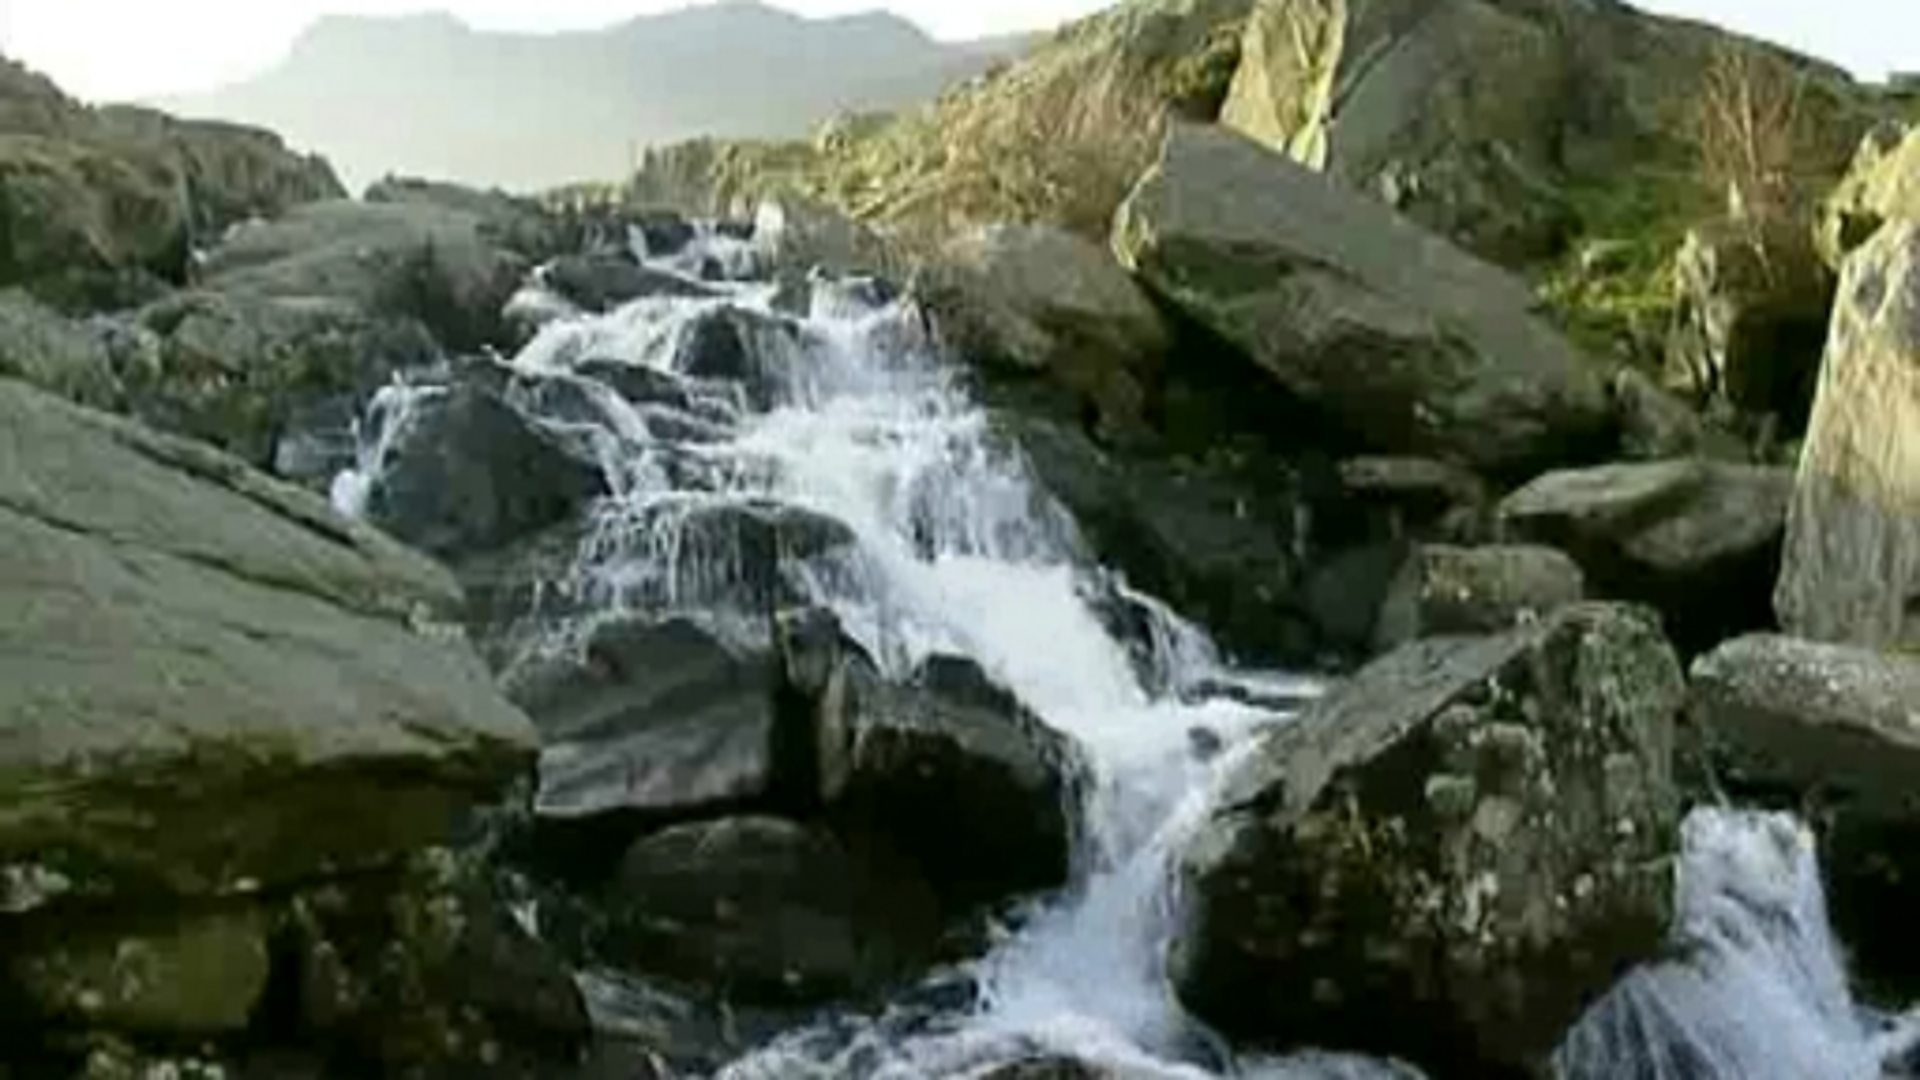 Bbc two geography in animation waterfalls and gorges erosion bbc two geography in animation waterfalls and gorges erosion and deposition ccuart Image collections